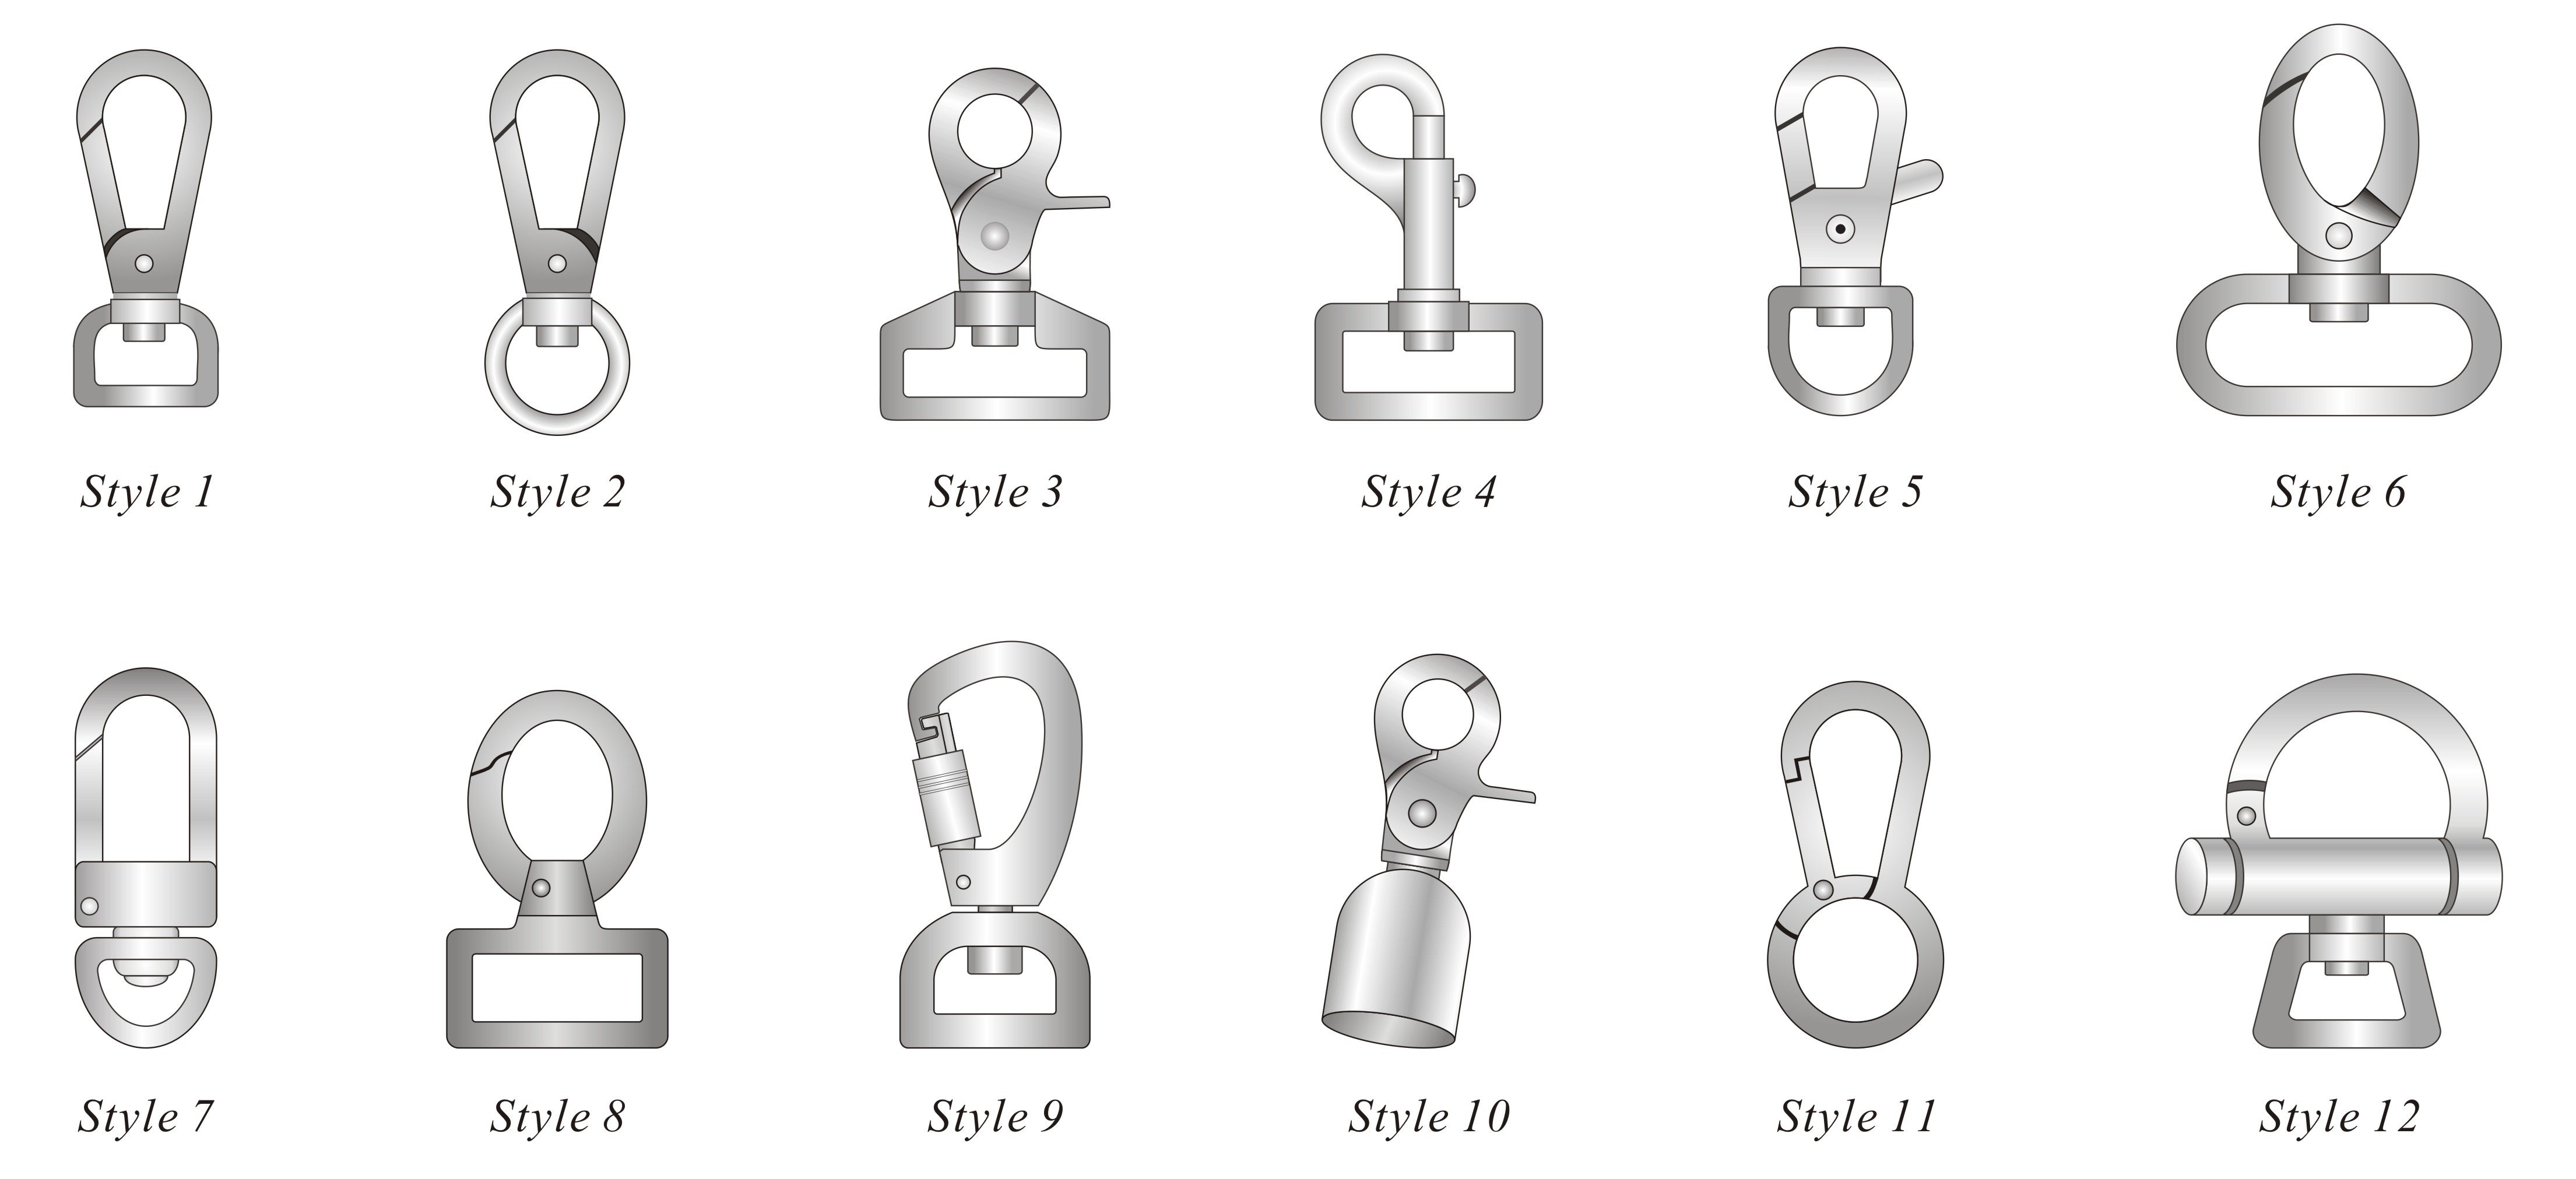 All Maya Metal Bag Hooks And Swivels Are Lacquer Coated For Lasting Function Integrity